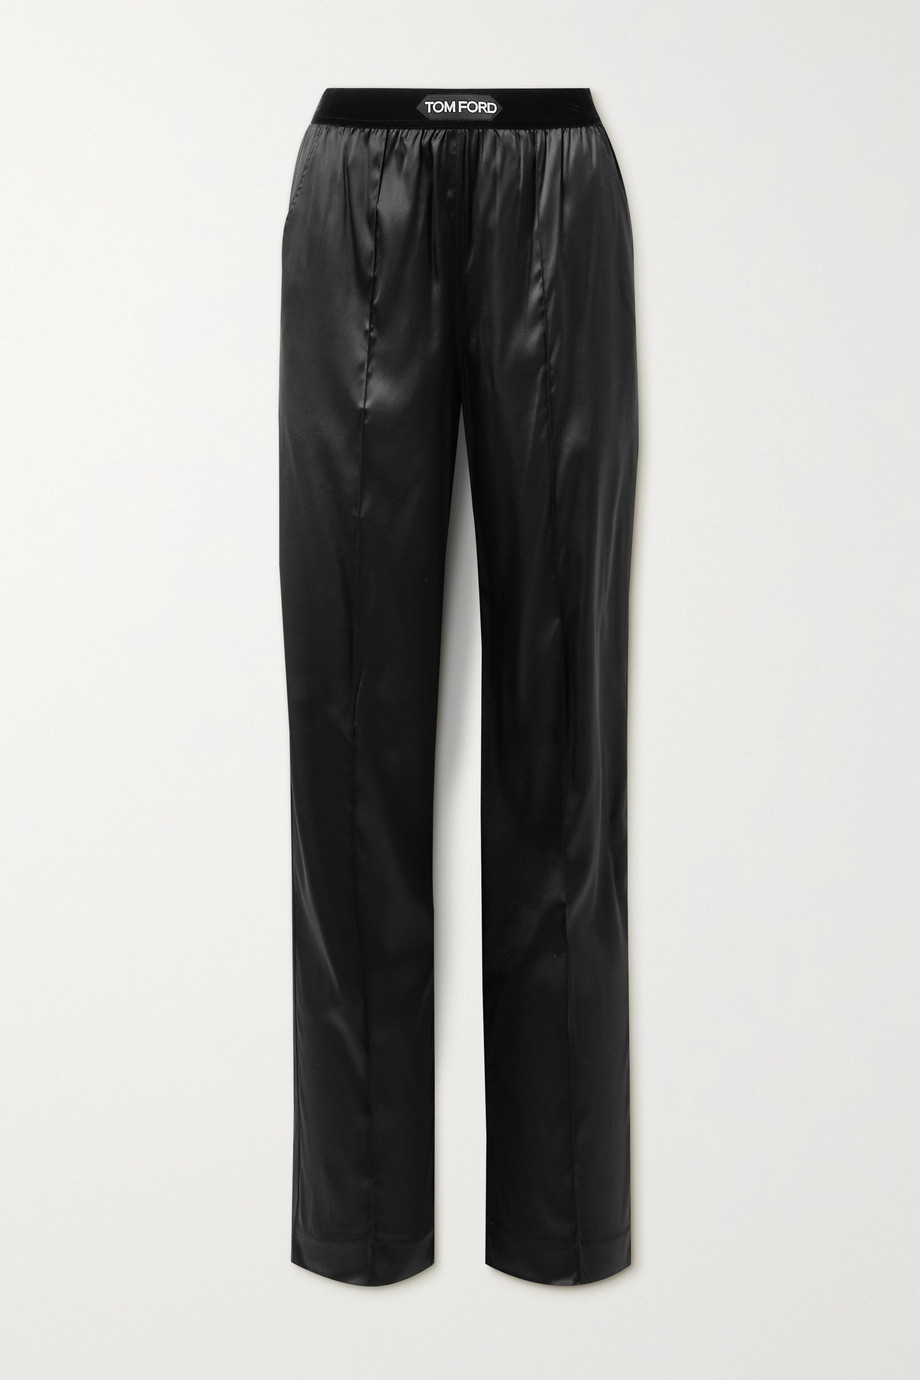 TOM FORD Velvet-trimmed stretch-silk satin pants